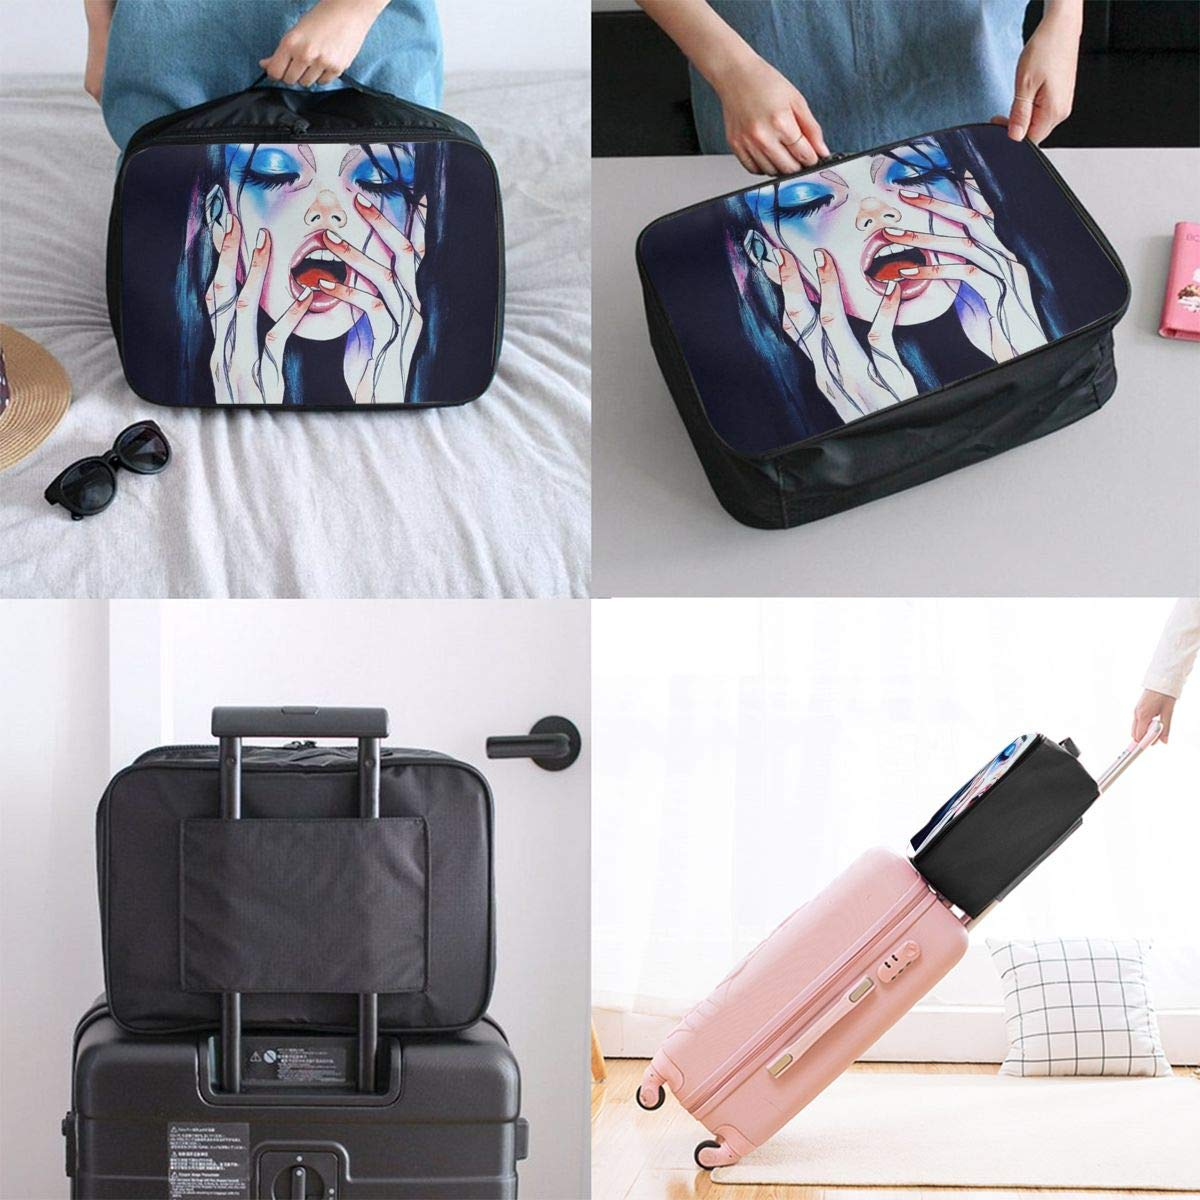 Gothic Vanity Excited Girl Woman Travel Lightweight Waterproof Folding Storage Portable Luggage Duffle Tote Bag Large Capacity In Trolley Handle Bags 6x11x15 Inch